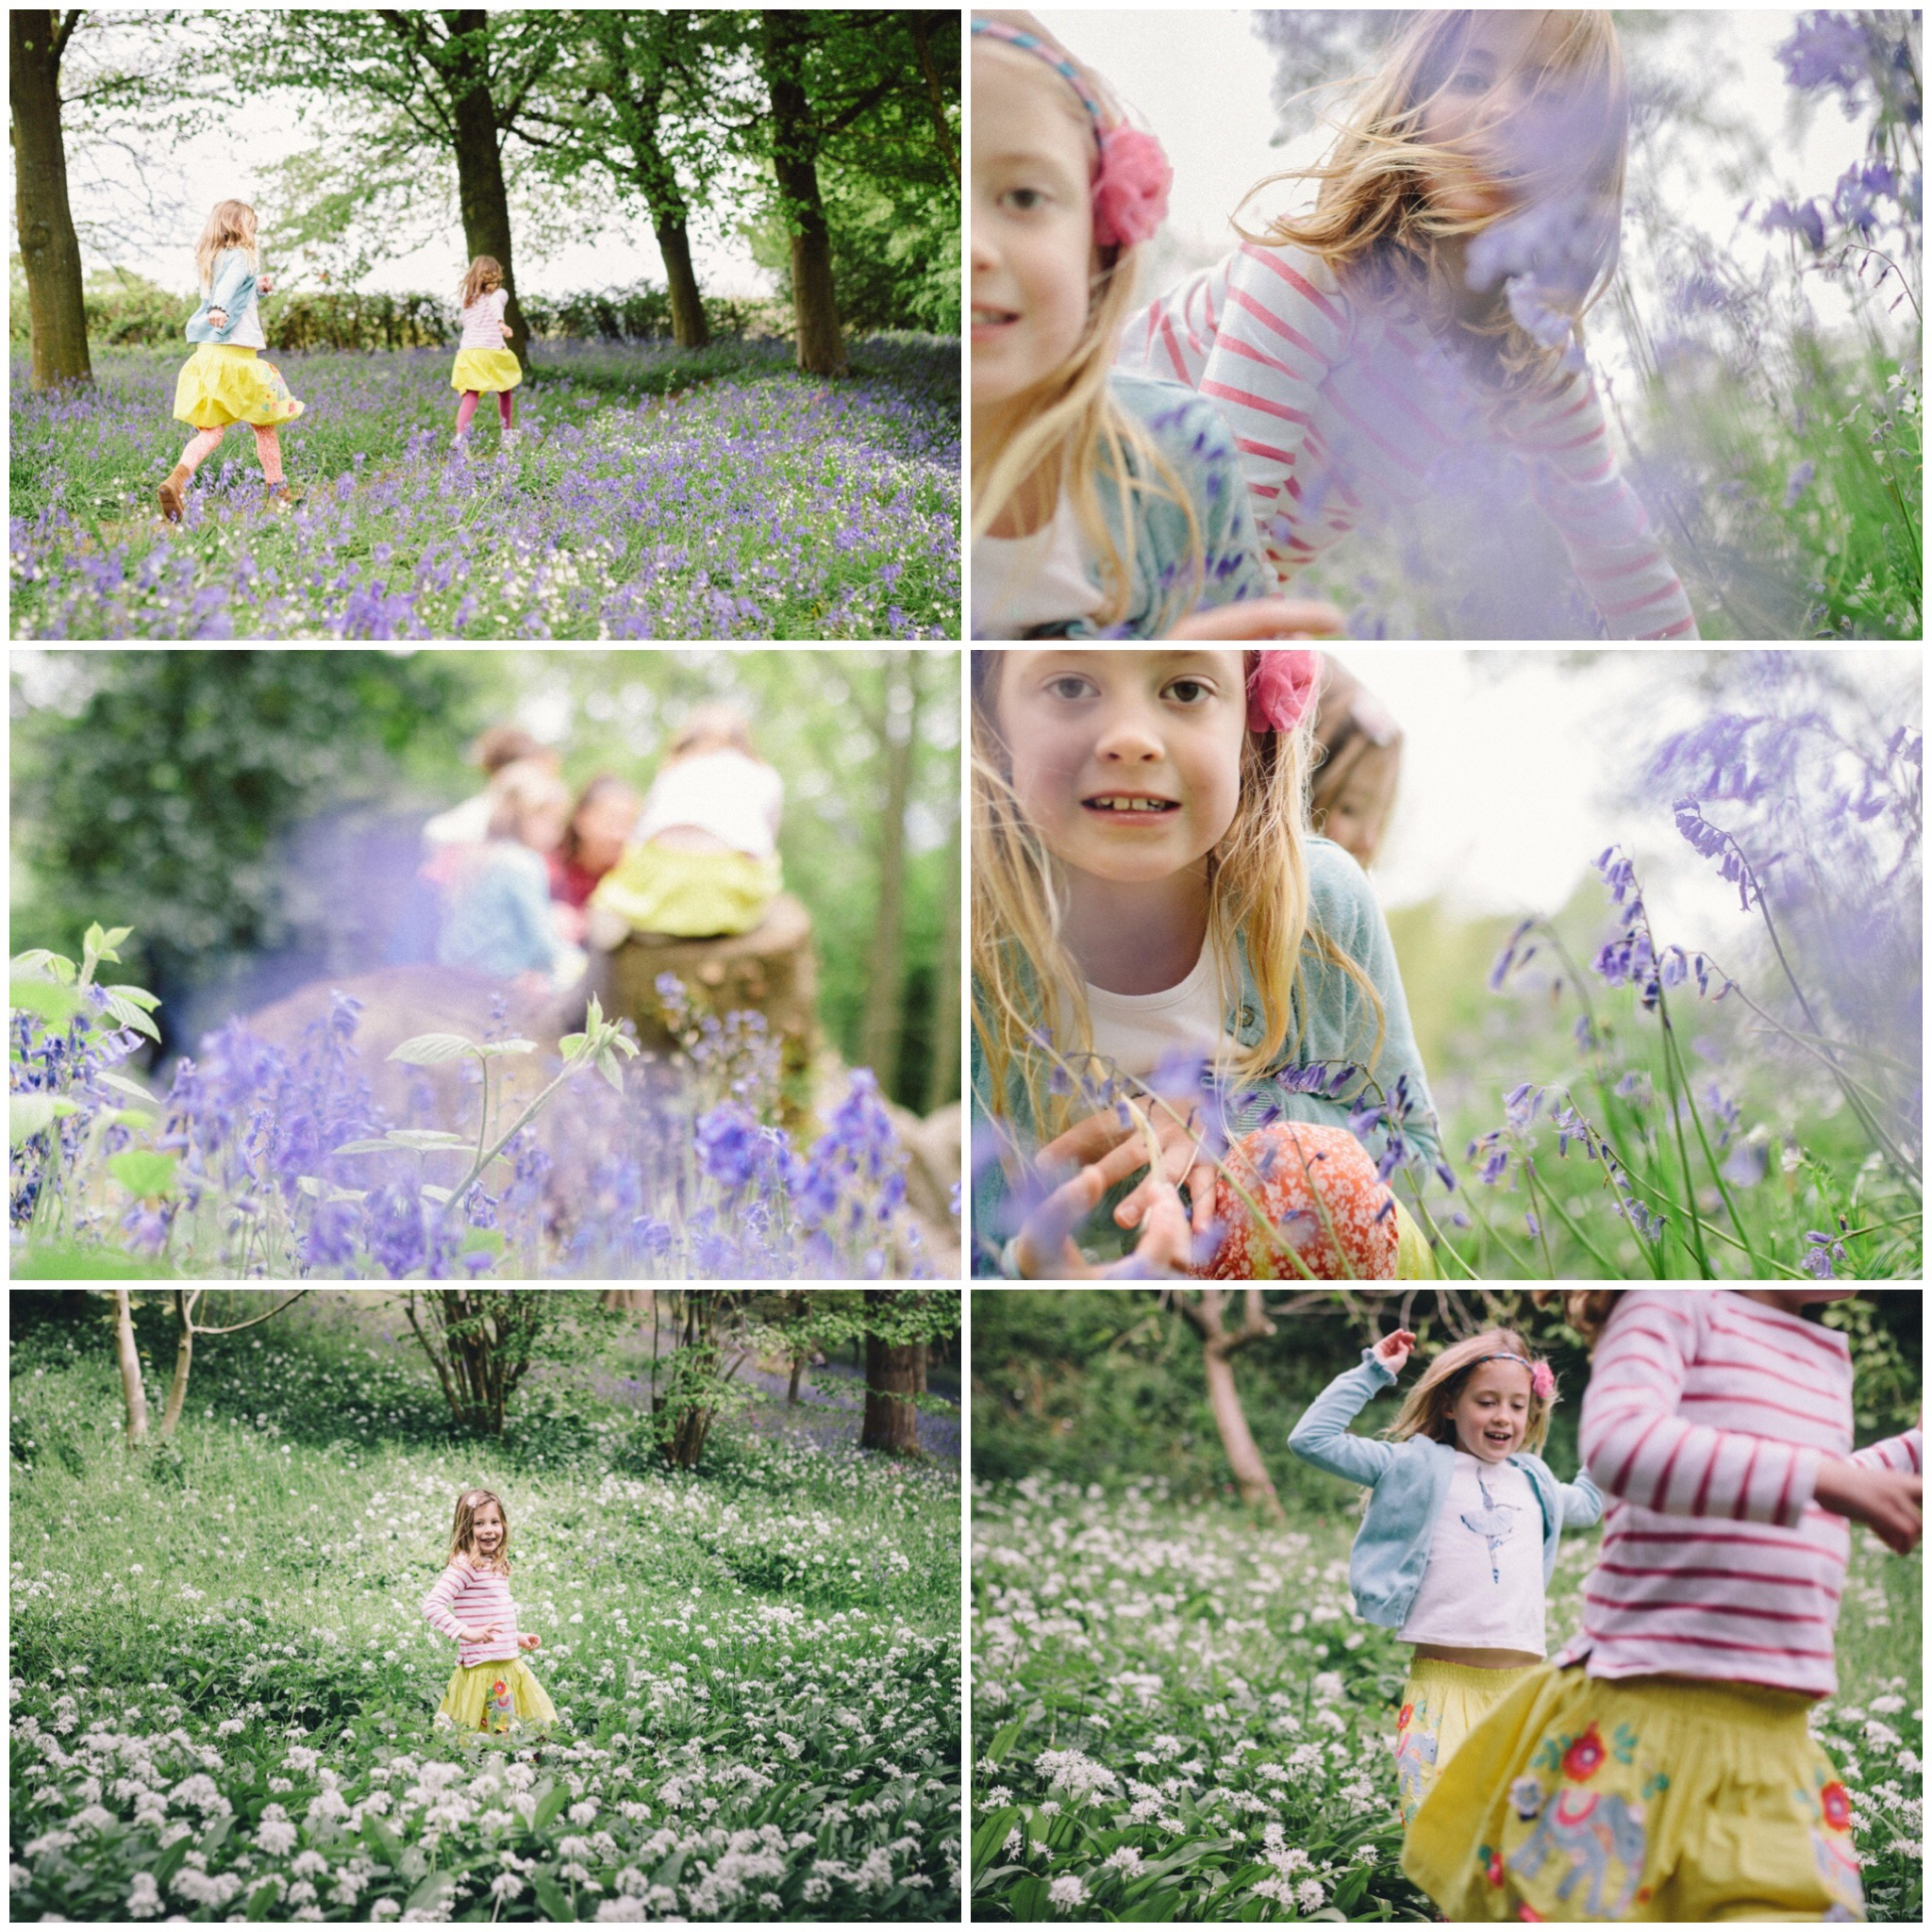 london family photographer greenwich bluebell shoot lavender.JPG